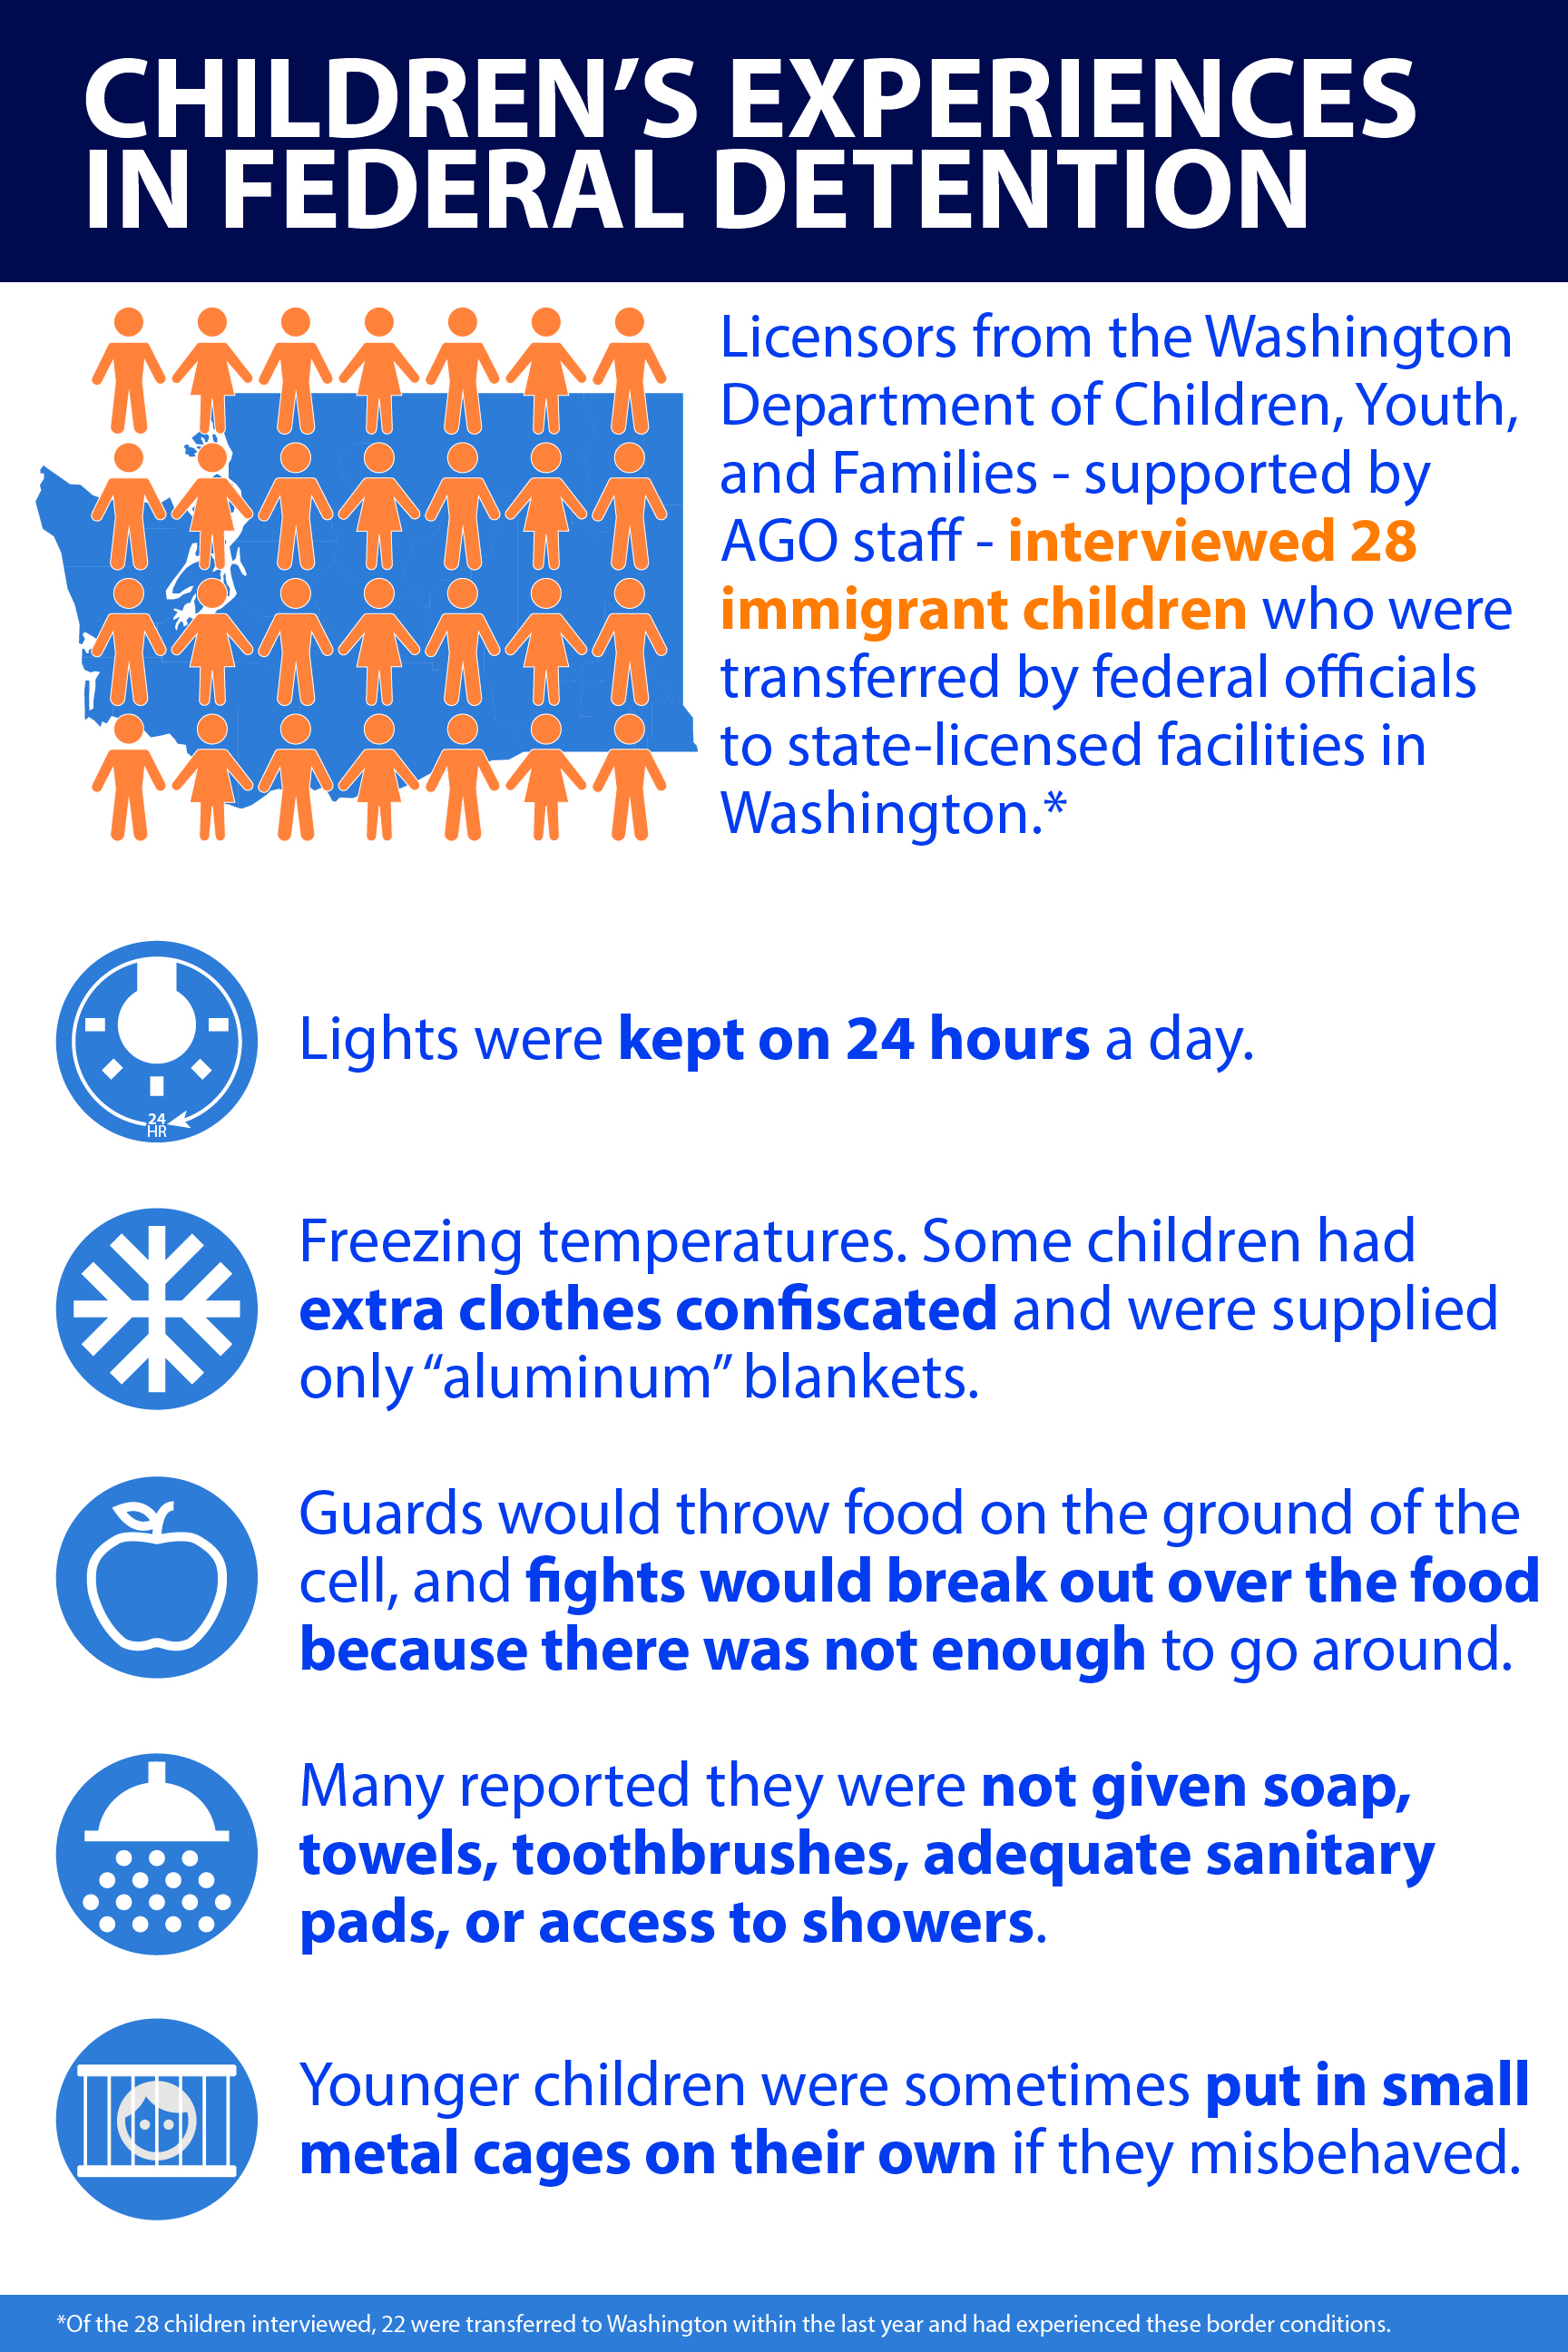 Poster of children's experiences in federal detention